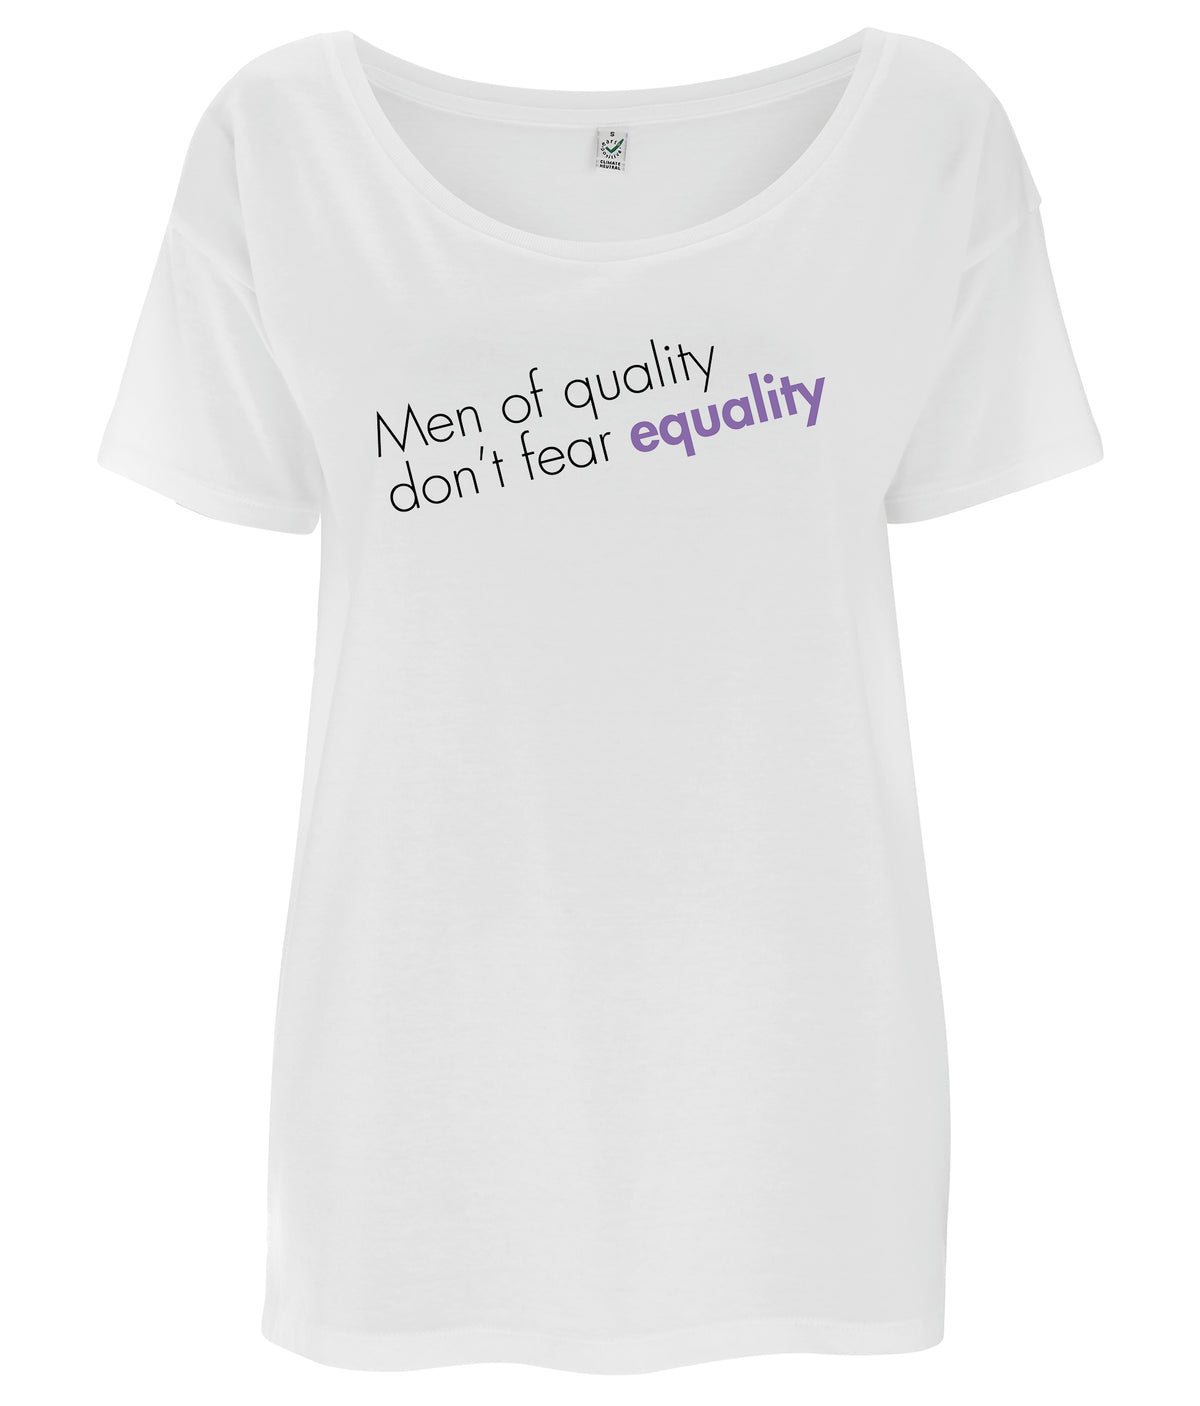 Men Of Quality Don't Fear Equality Tencel Blend Oversized Feminist T Shirt White